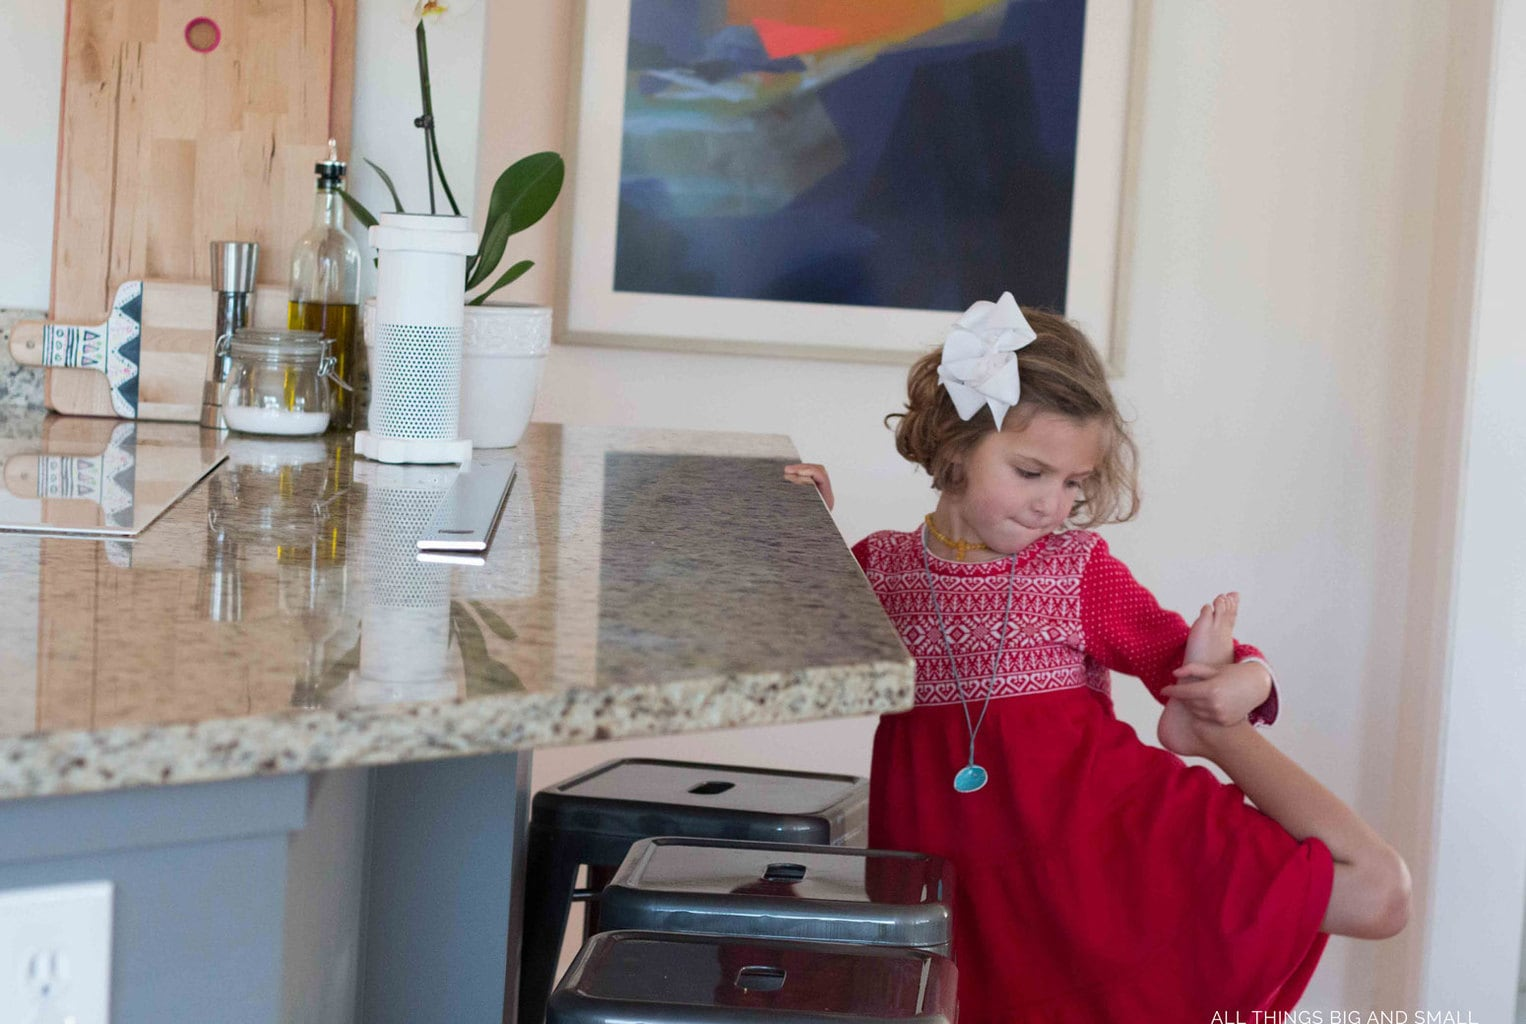 How to make simpler for busy moms #momhacks using Amazon ECHO and Alexa